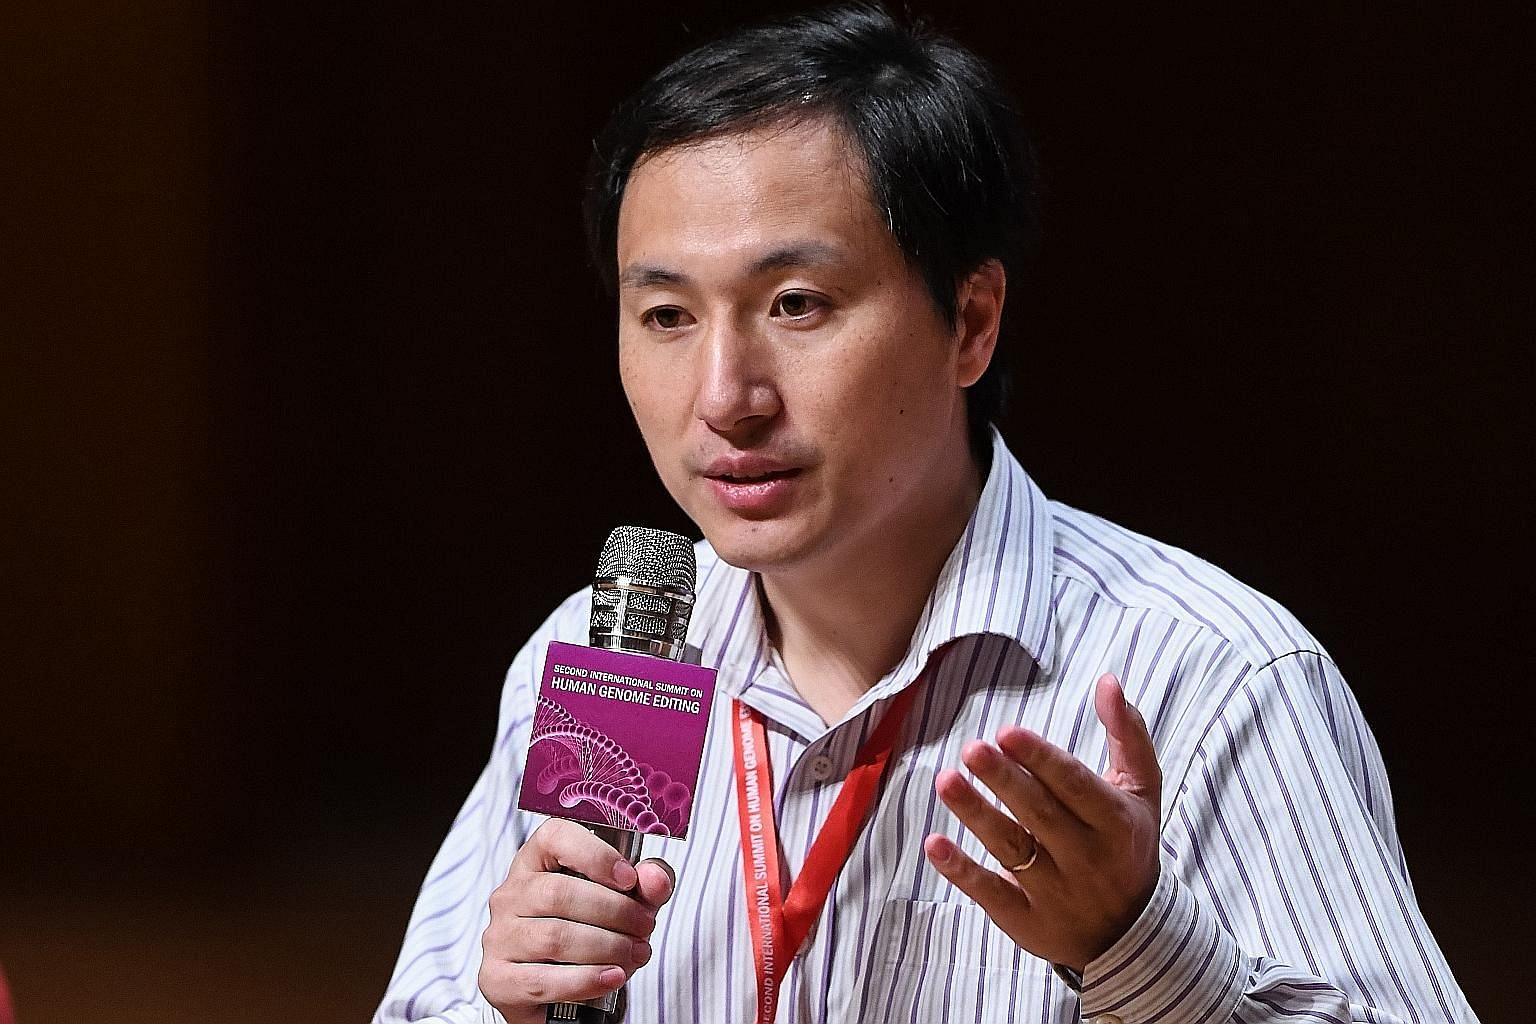 In a claim last year which shocked scientists, He Jiankui announced that the world's first gene-edited babies - twin girls - had been born after he altered their DNA to prevent them from contracting HIV.